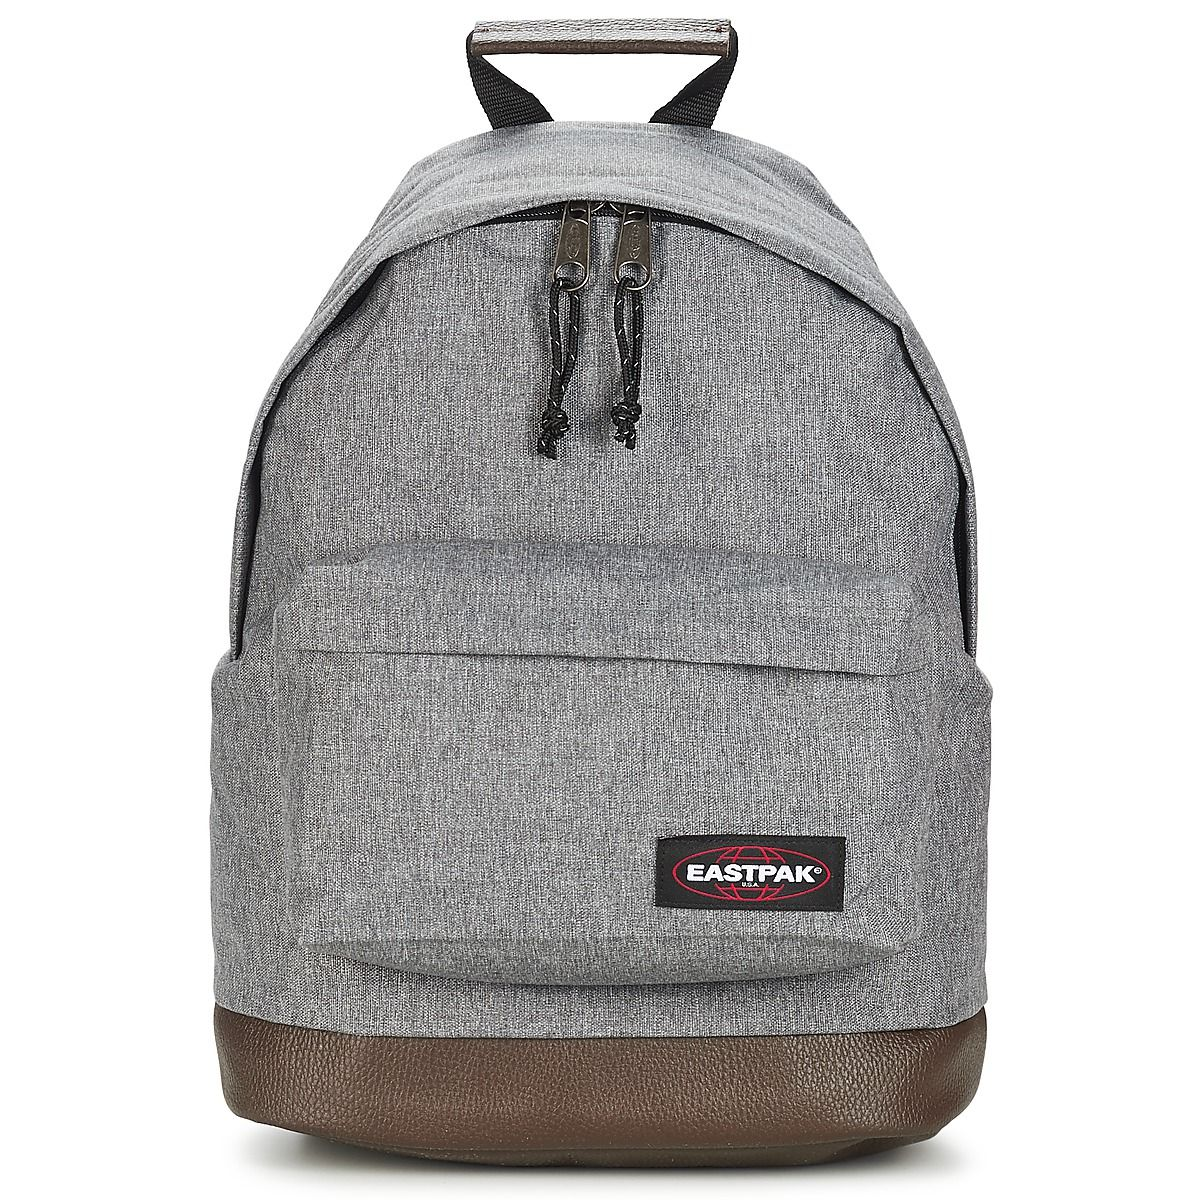 sacs spartoo craquez sur les sacs eastpak achat sac dos eastpak wyoming 24l gris prix promo. Black Bedroom Furniture Sets. Home Design Ideas